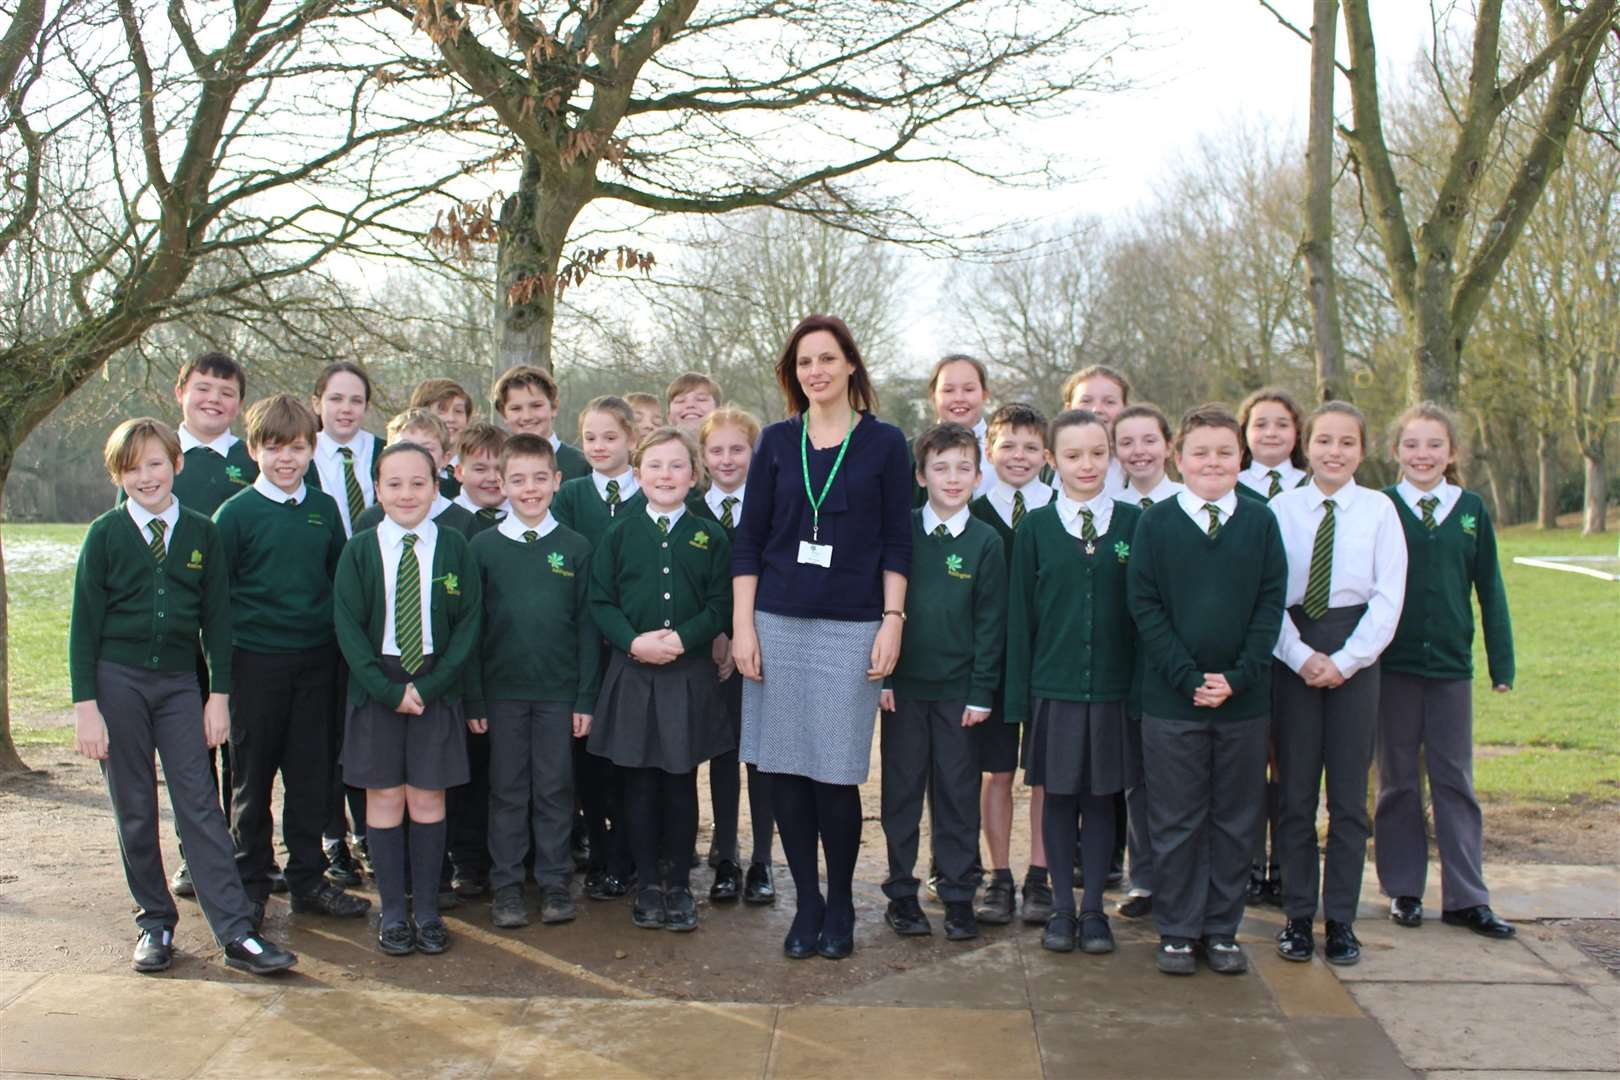 Vicky Doherty, the new headteacher at Kedington Primary Academy, with some of her pupils (6995369)